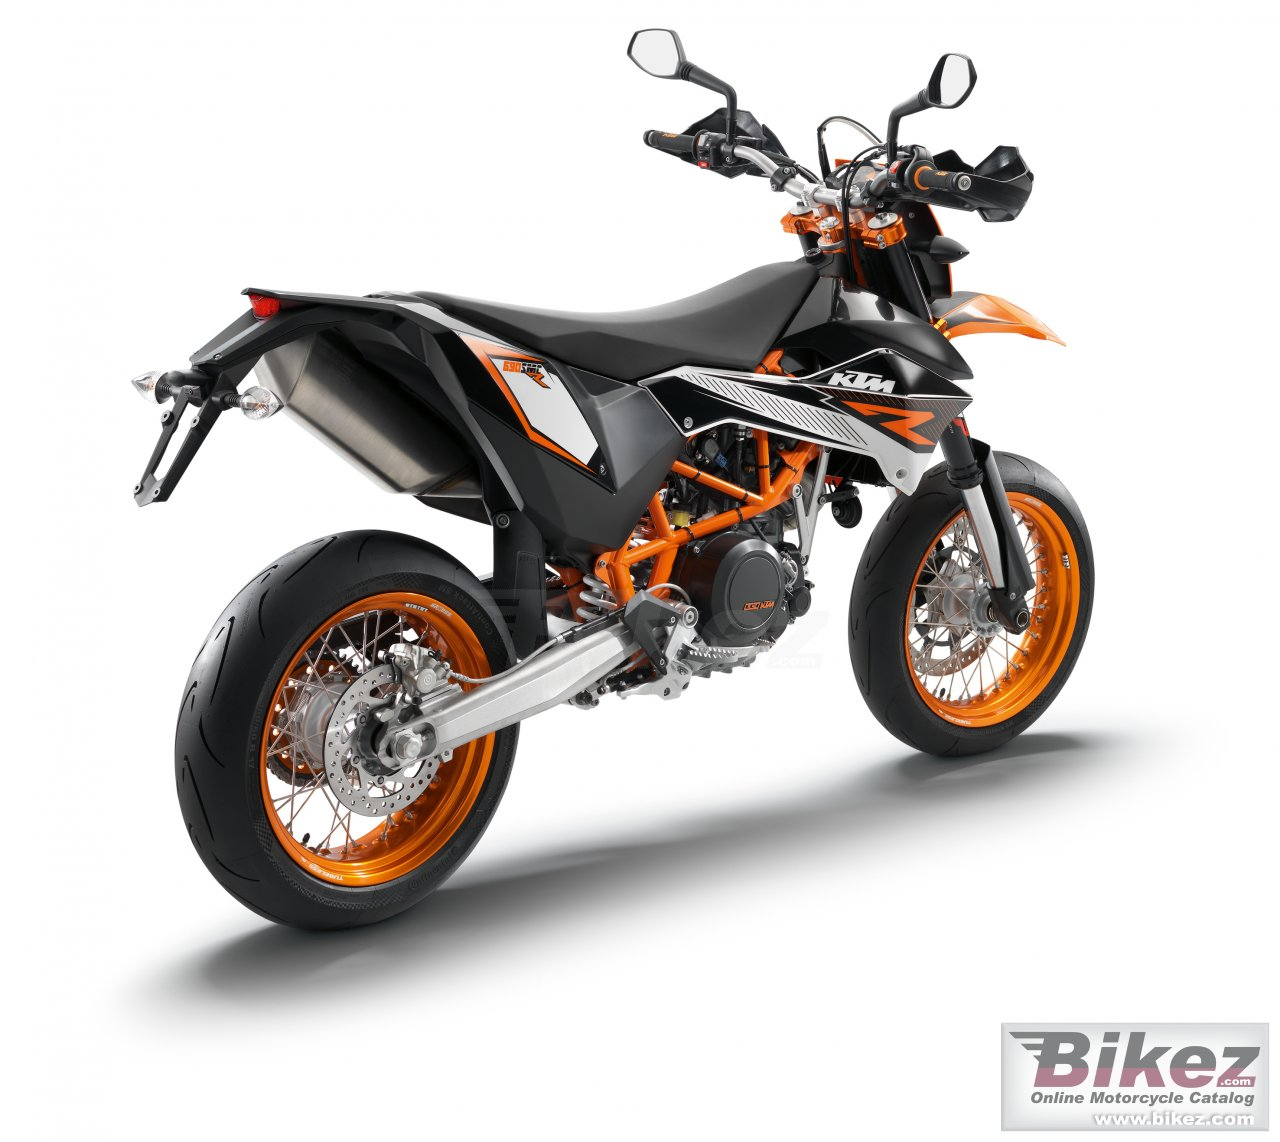 Big KTM 690 smc r picture and wallpaper from Bikez.com